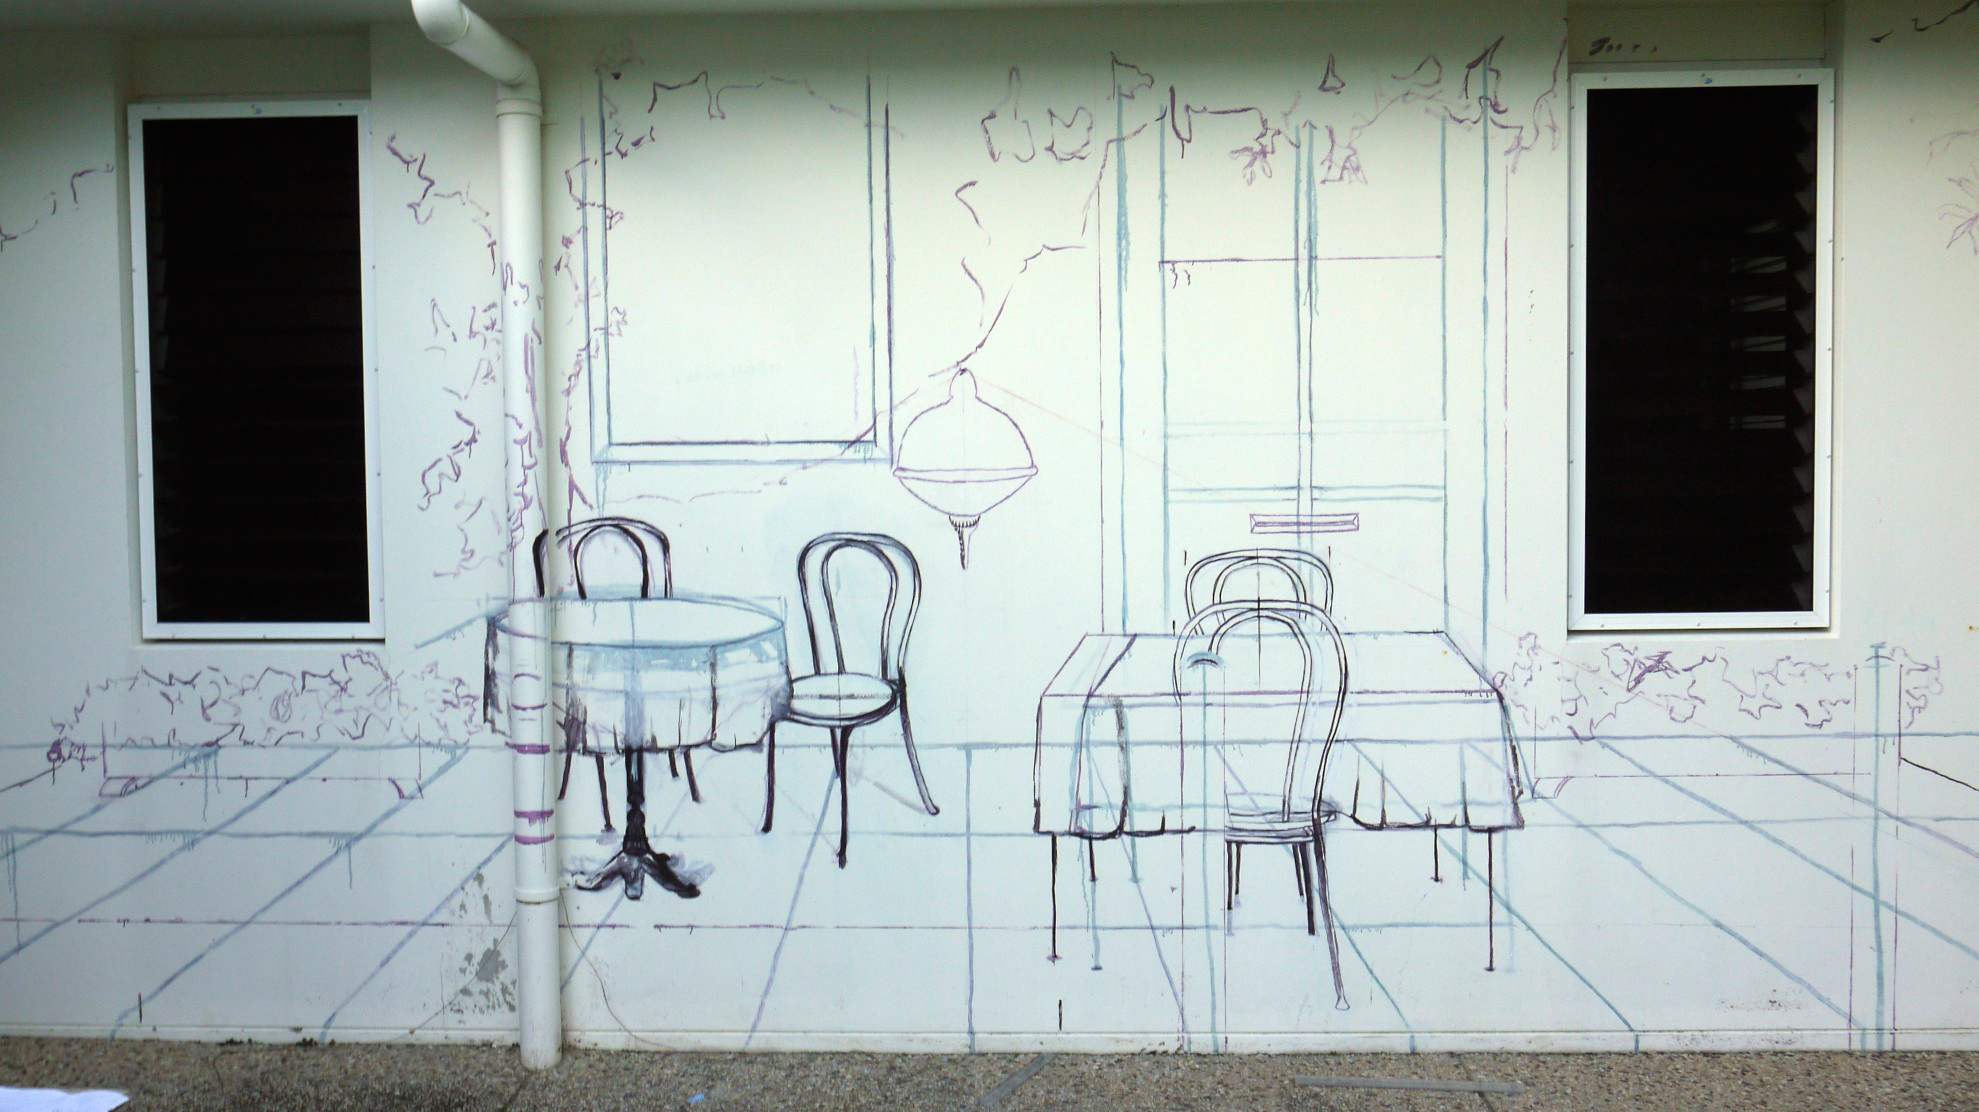 drawing to scale on the wall